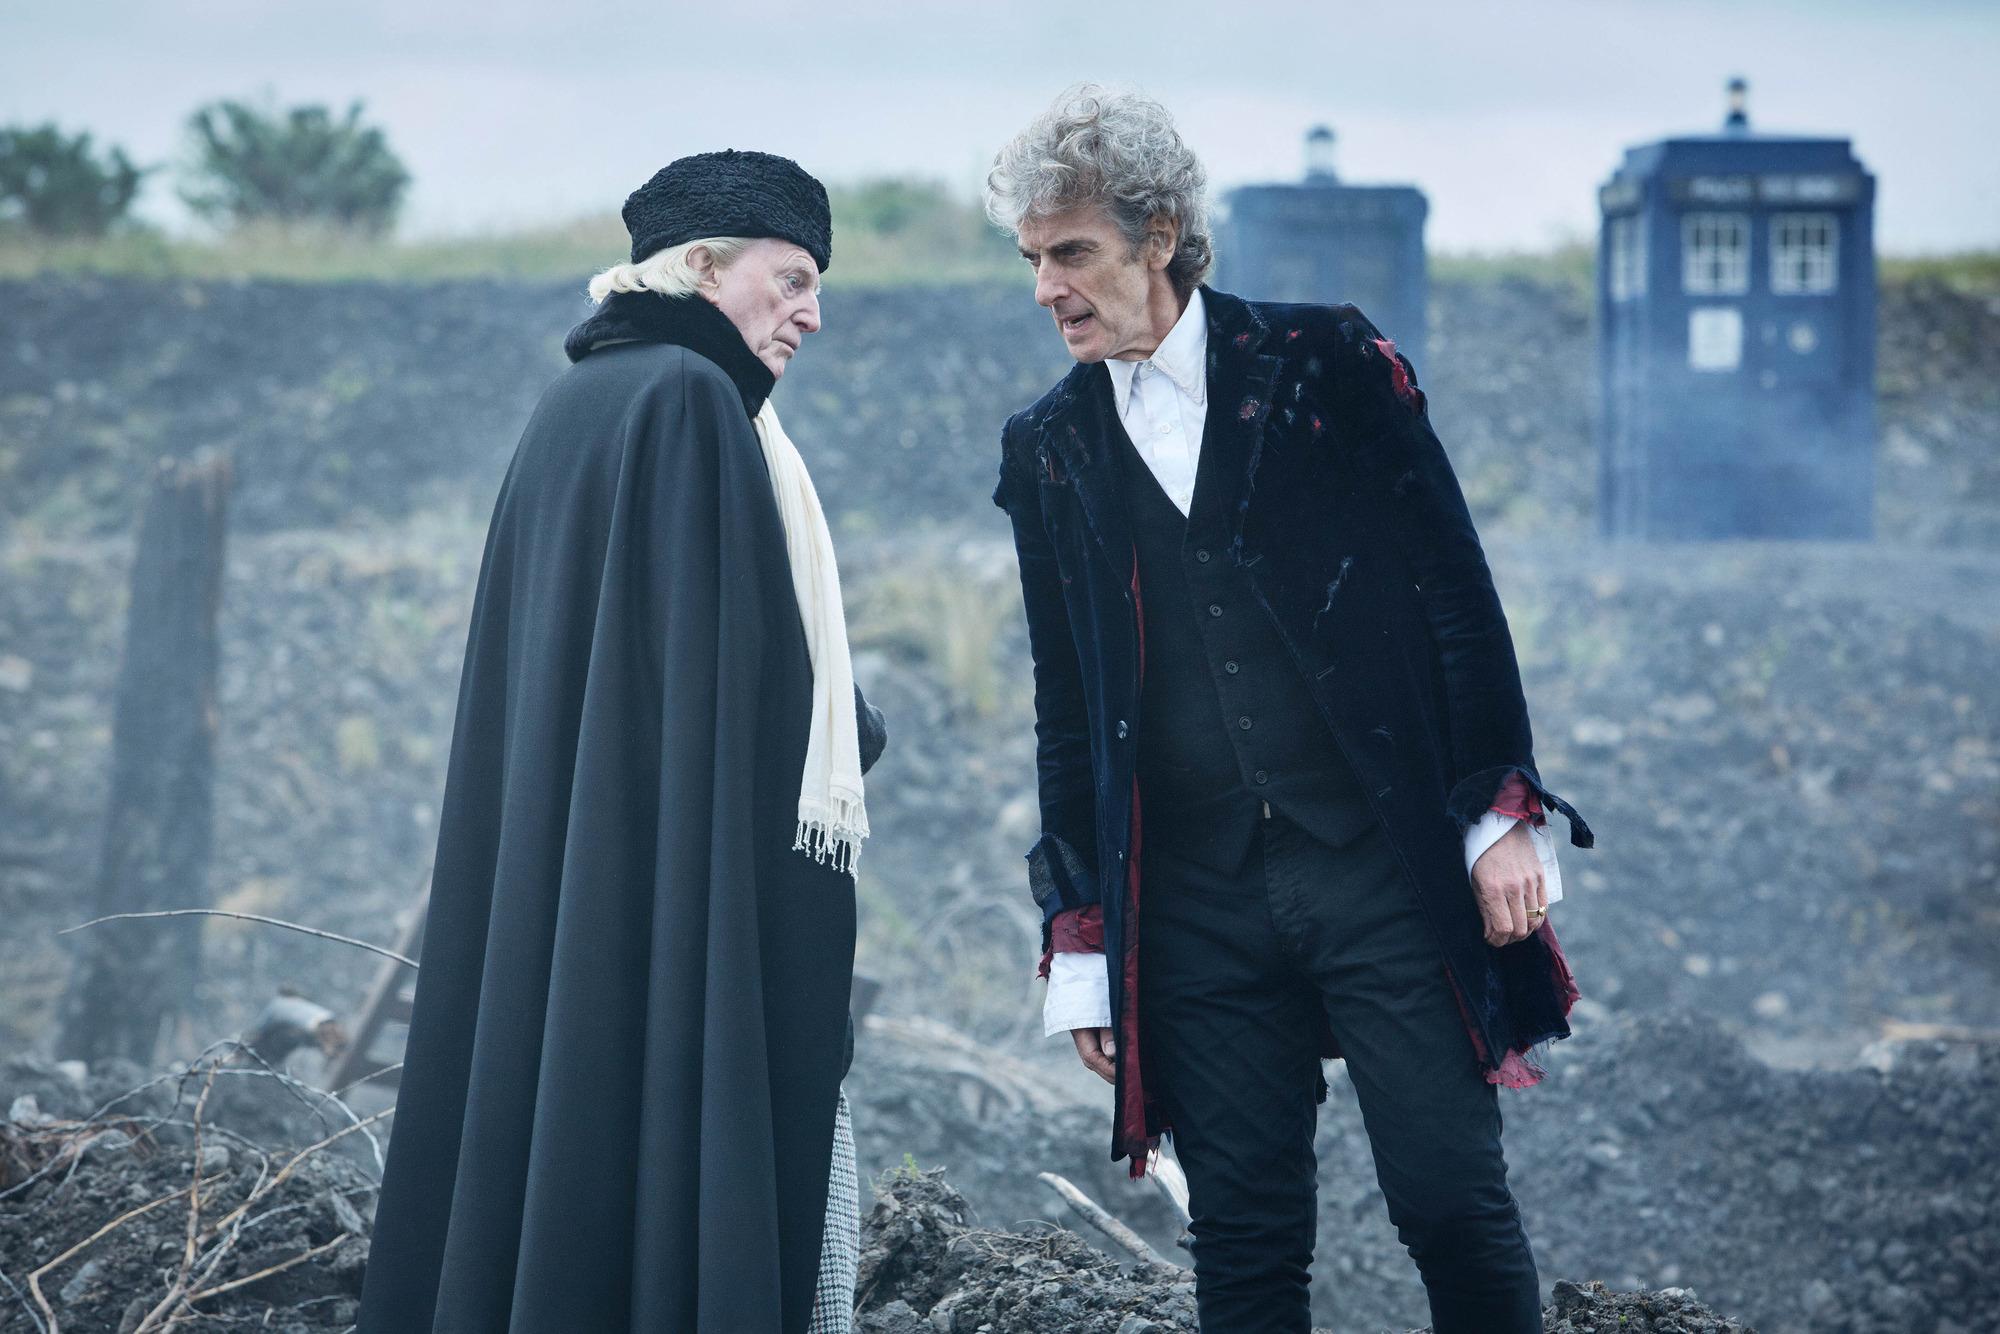 Twice Upon a Time: The First Doctor (David Bradley), The Doctor (Peter Capaldi) (Credit: BBC/BBC Worldwide (Simon Ridgway))